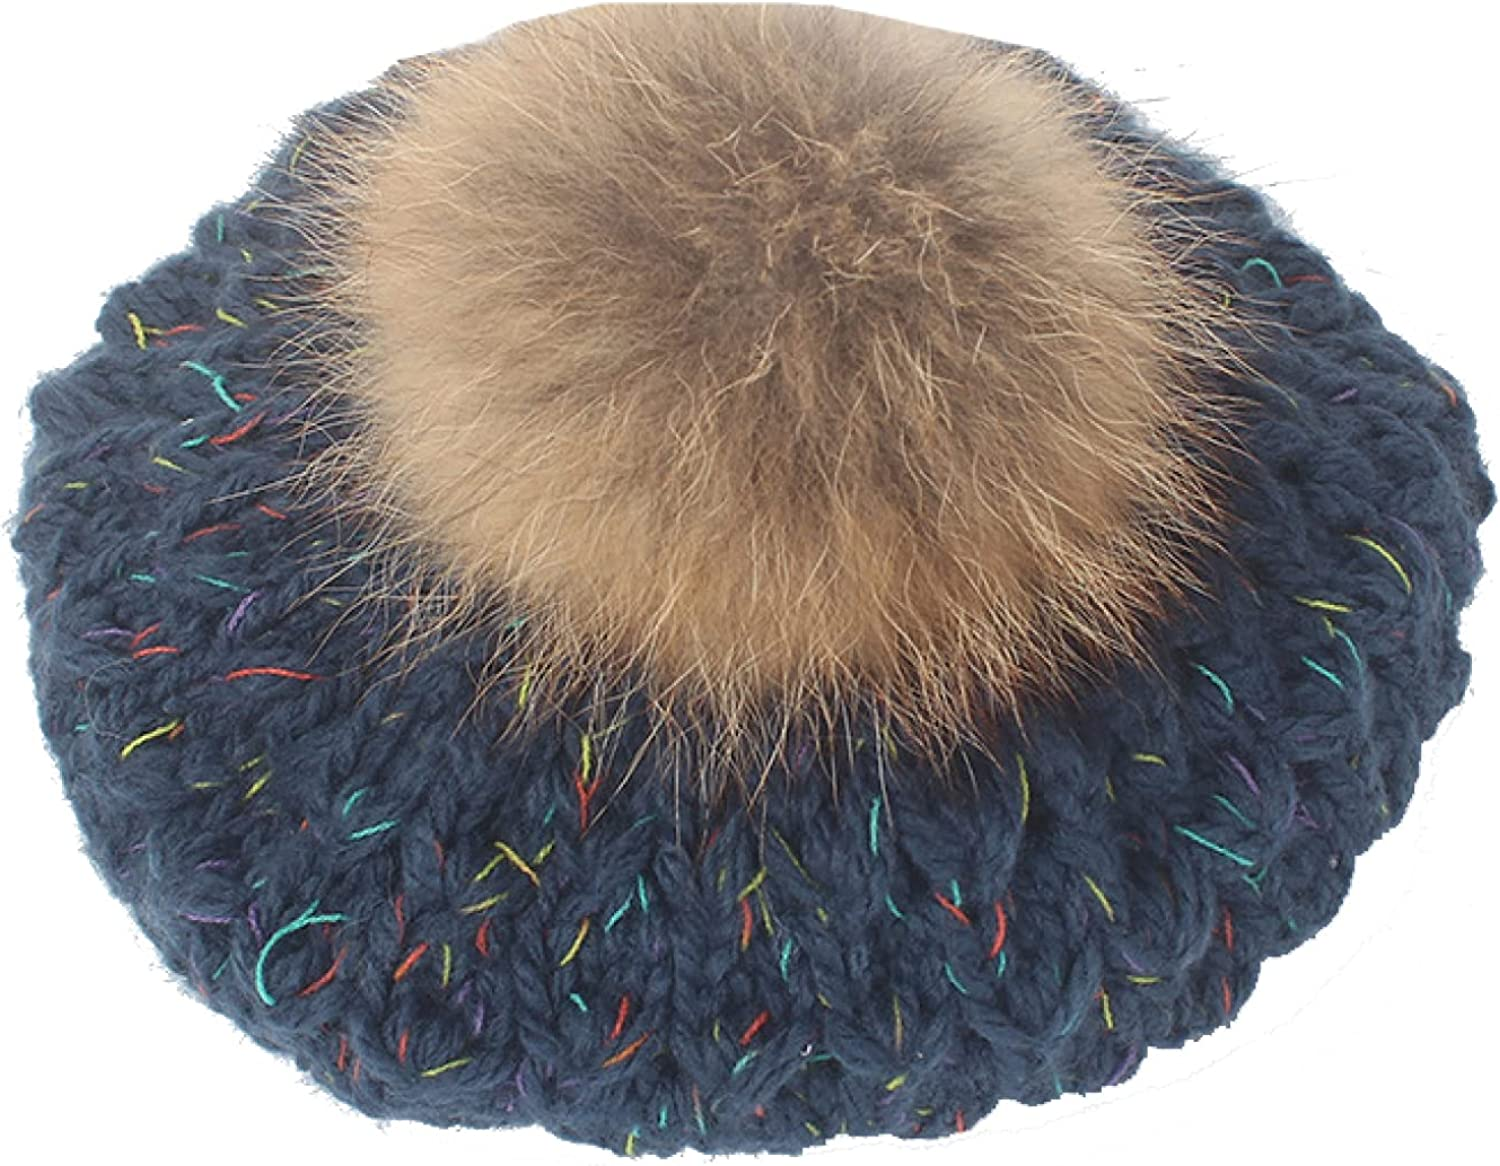 ASO-SLING Women Max 80% OFF Solid Color Crochet with Pom Beret Knitted Hats 25% OFF